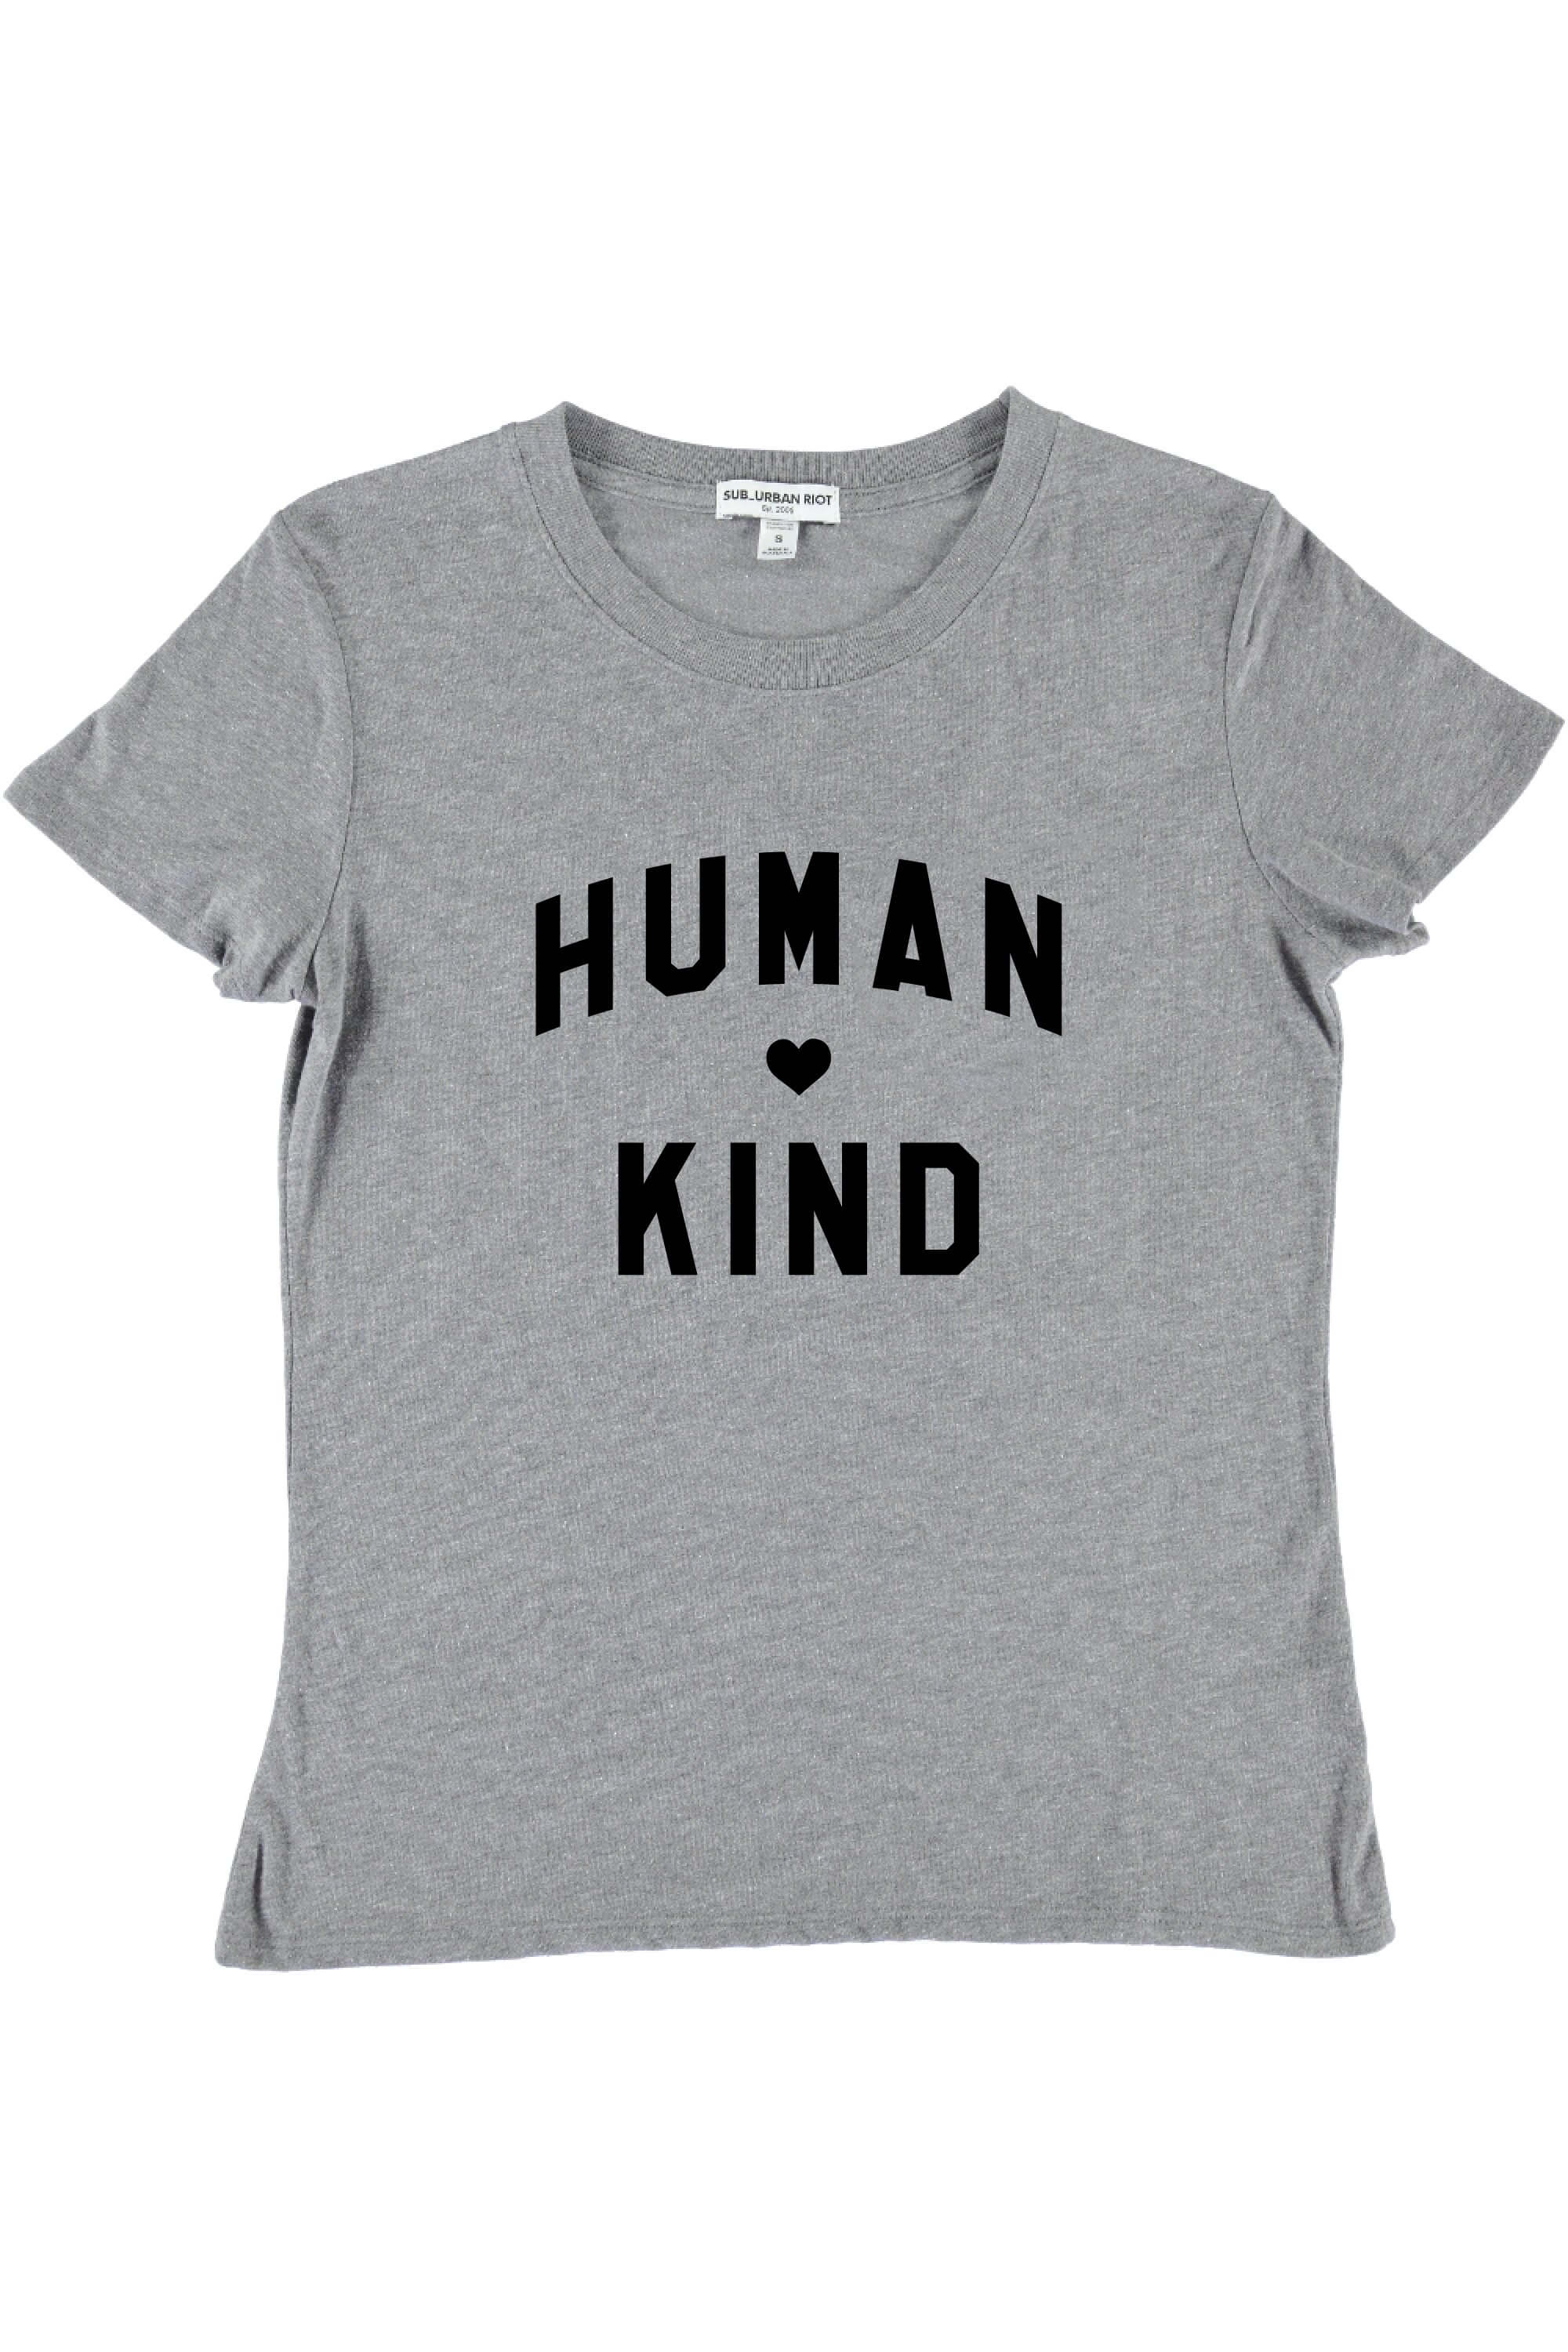 HUMANKIND YOUTH SIZE LOOSE TEE